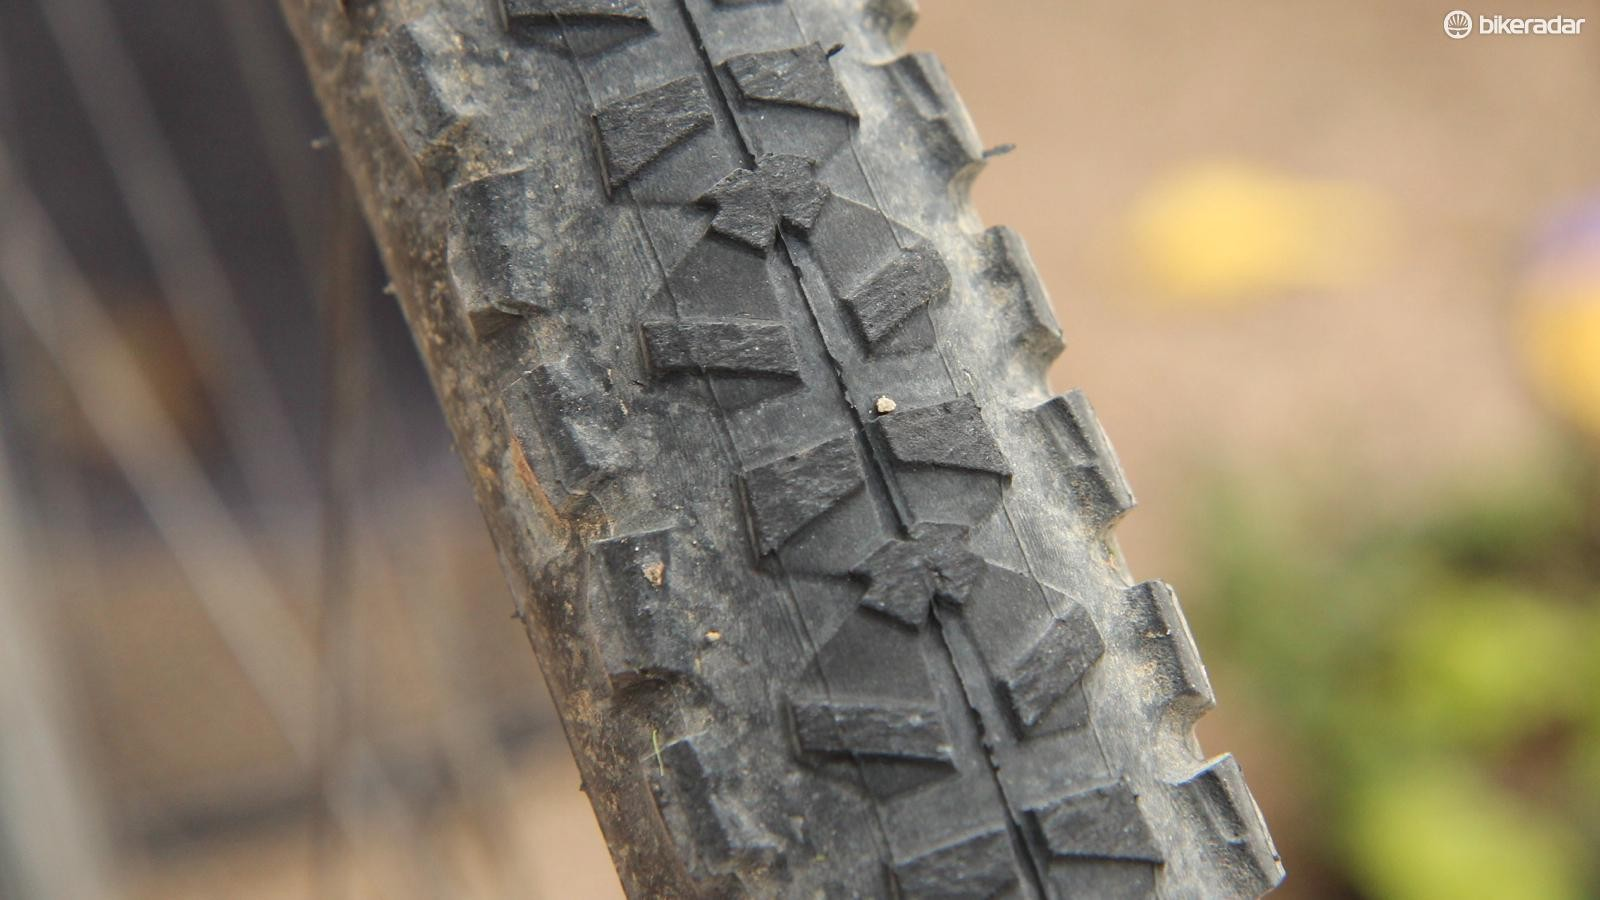 With Hutchinson ProtectAir sealant, we have picked up many thorns like this without having to stop